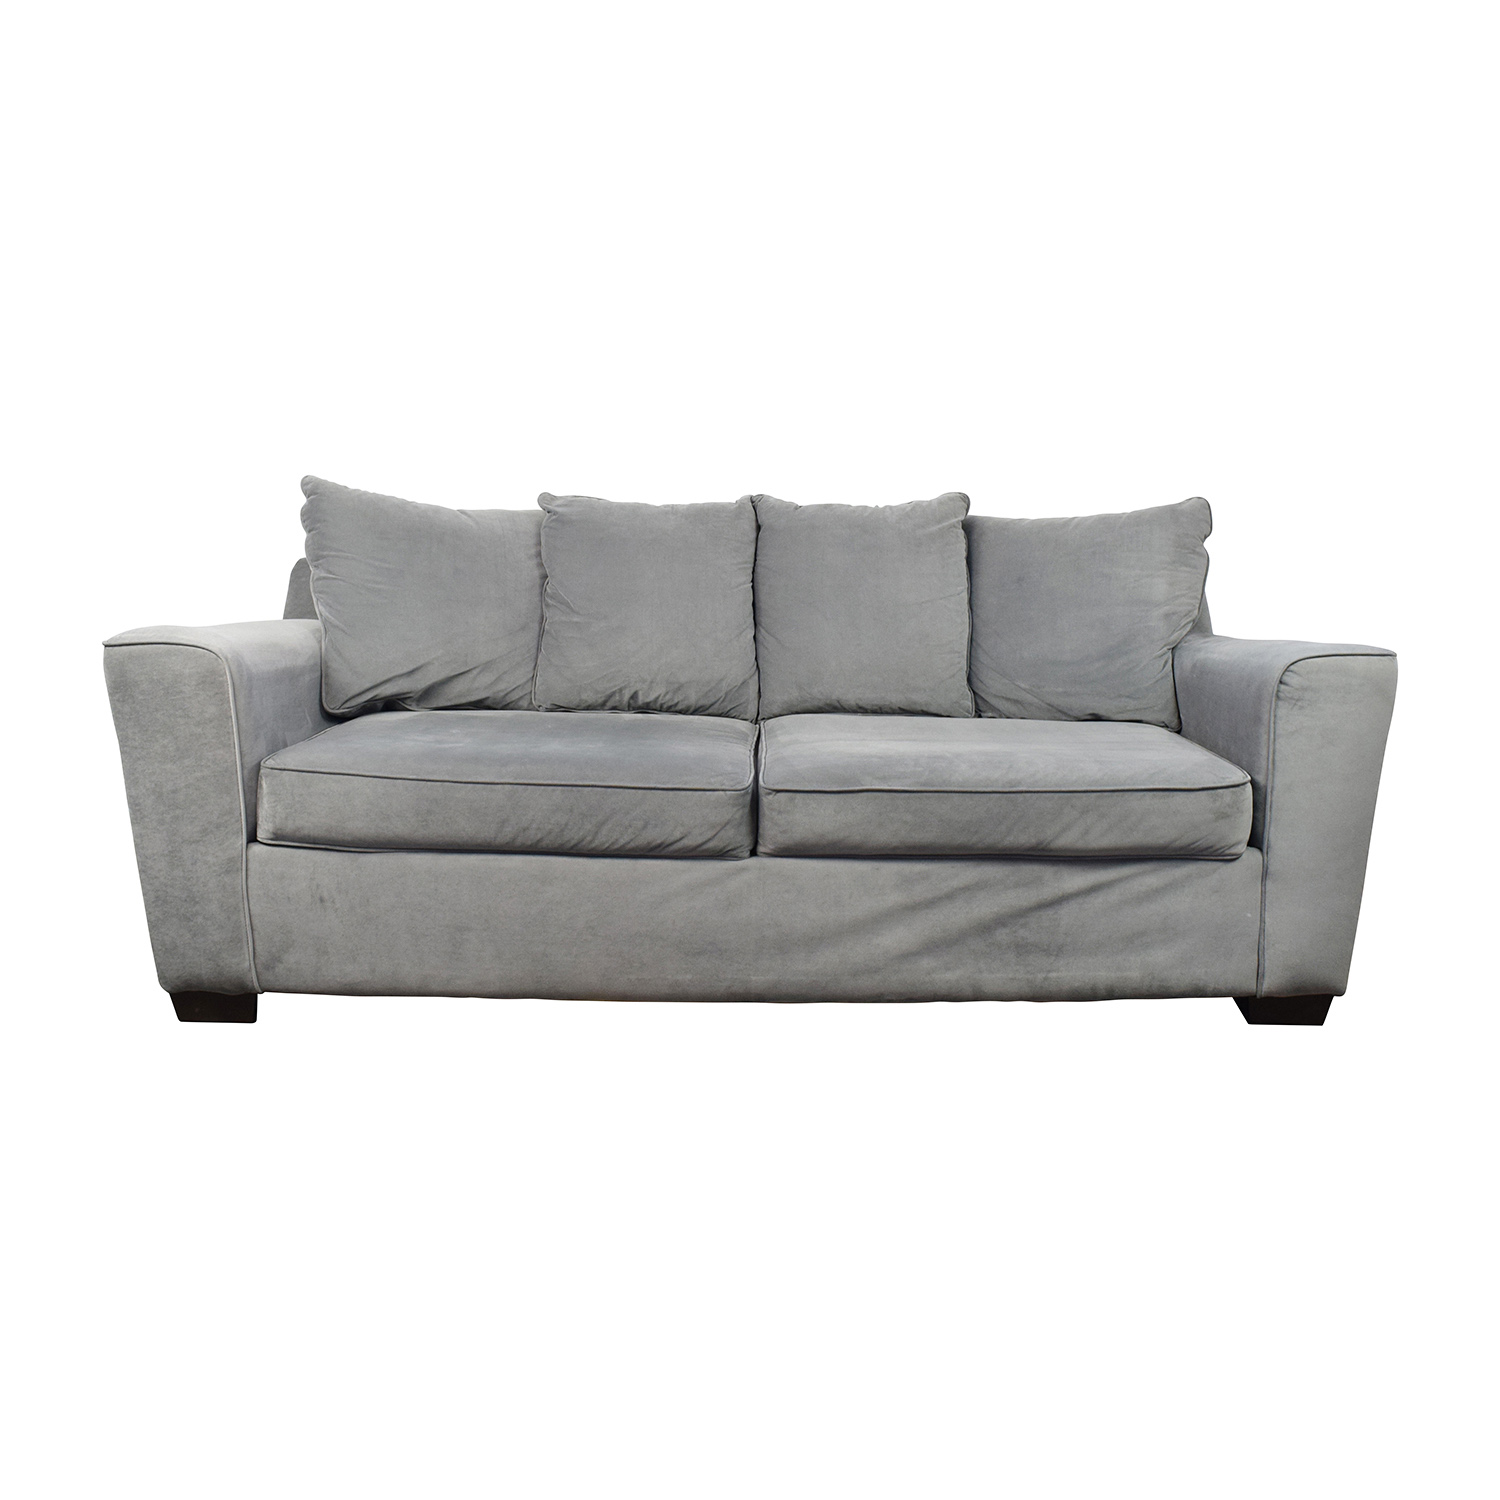 Jennifer Convertibles Jennifer Convertibles Gray Sofa on sale